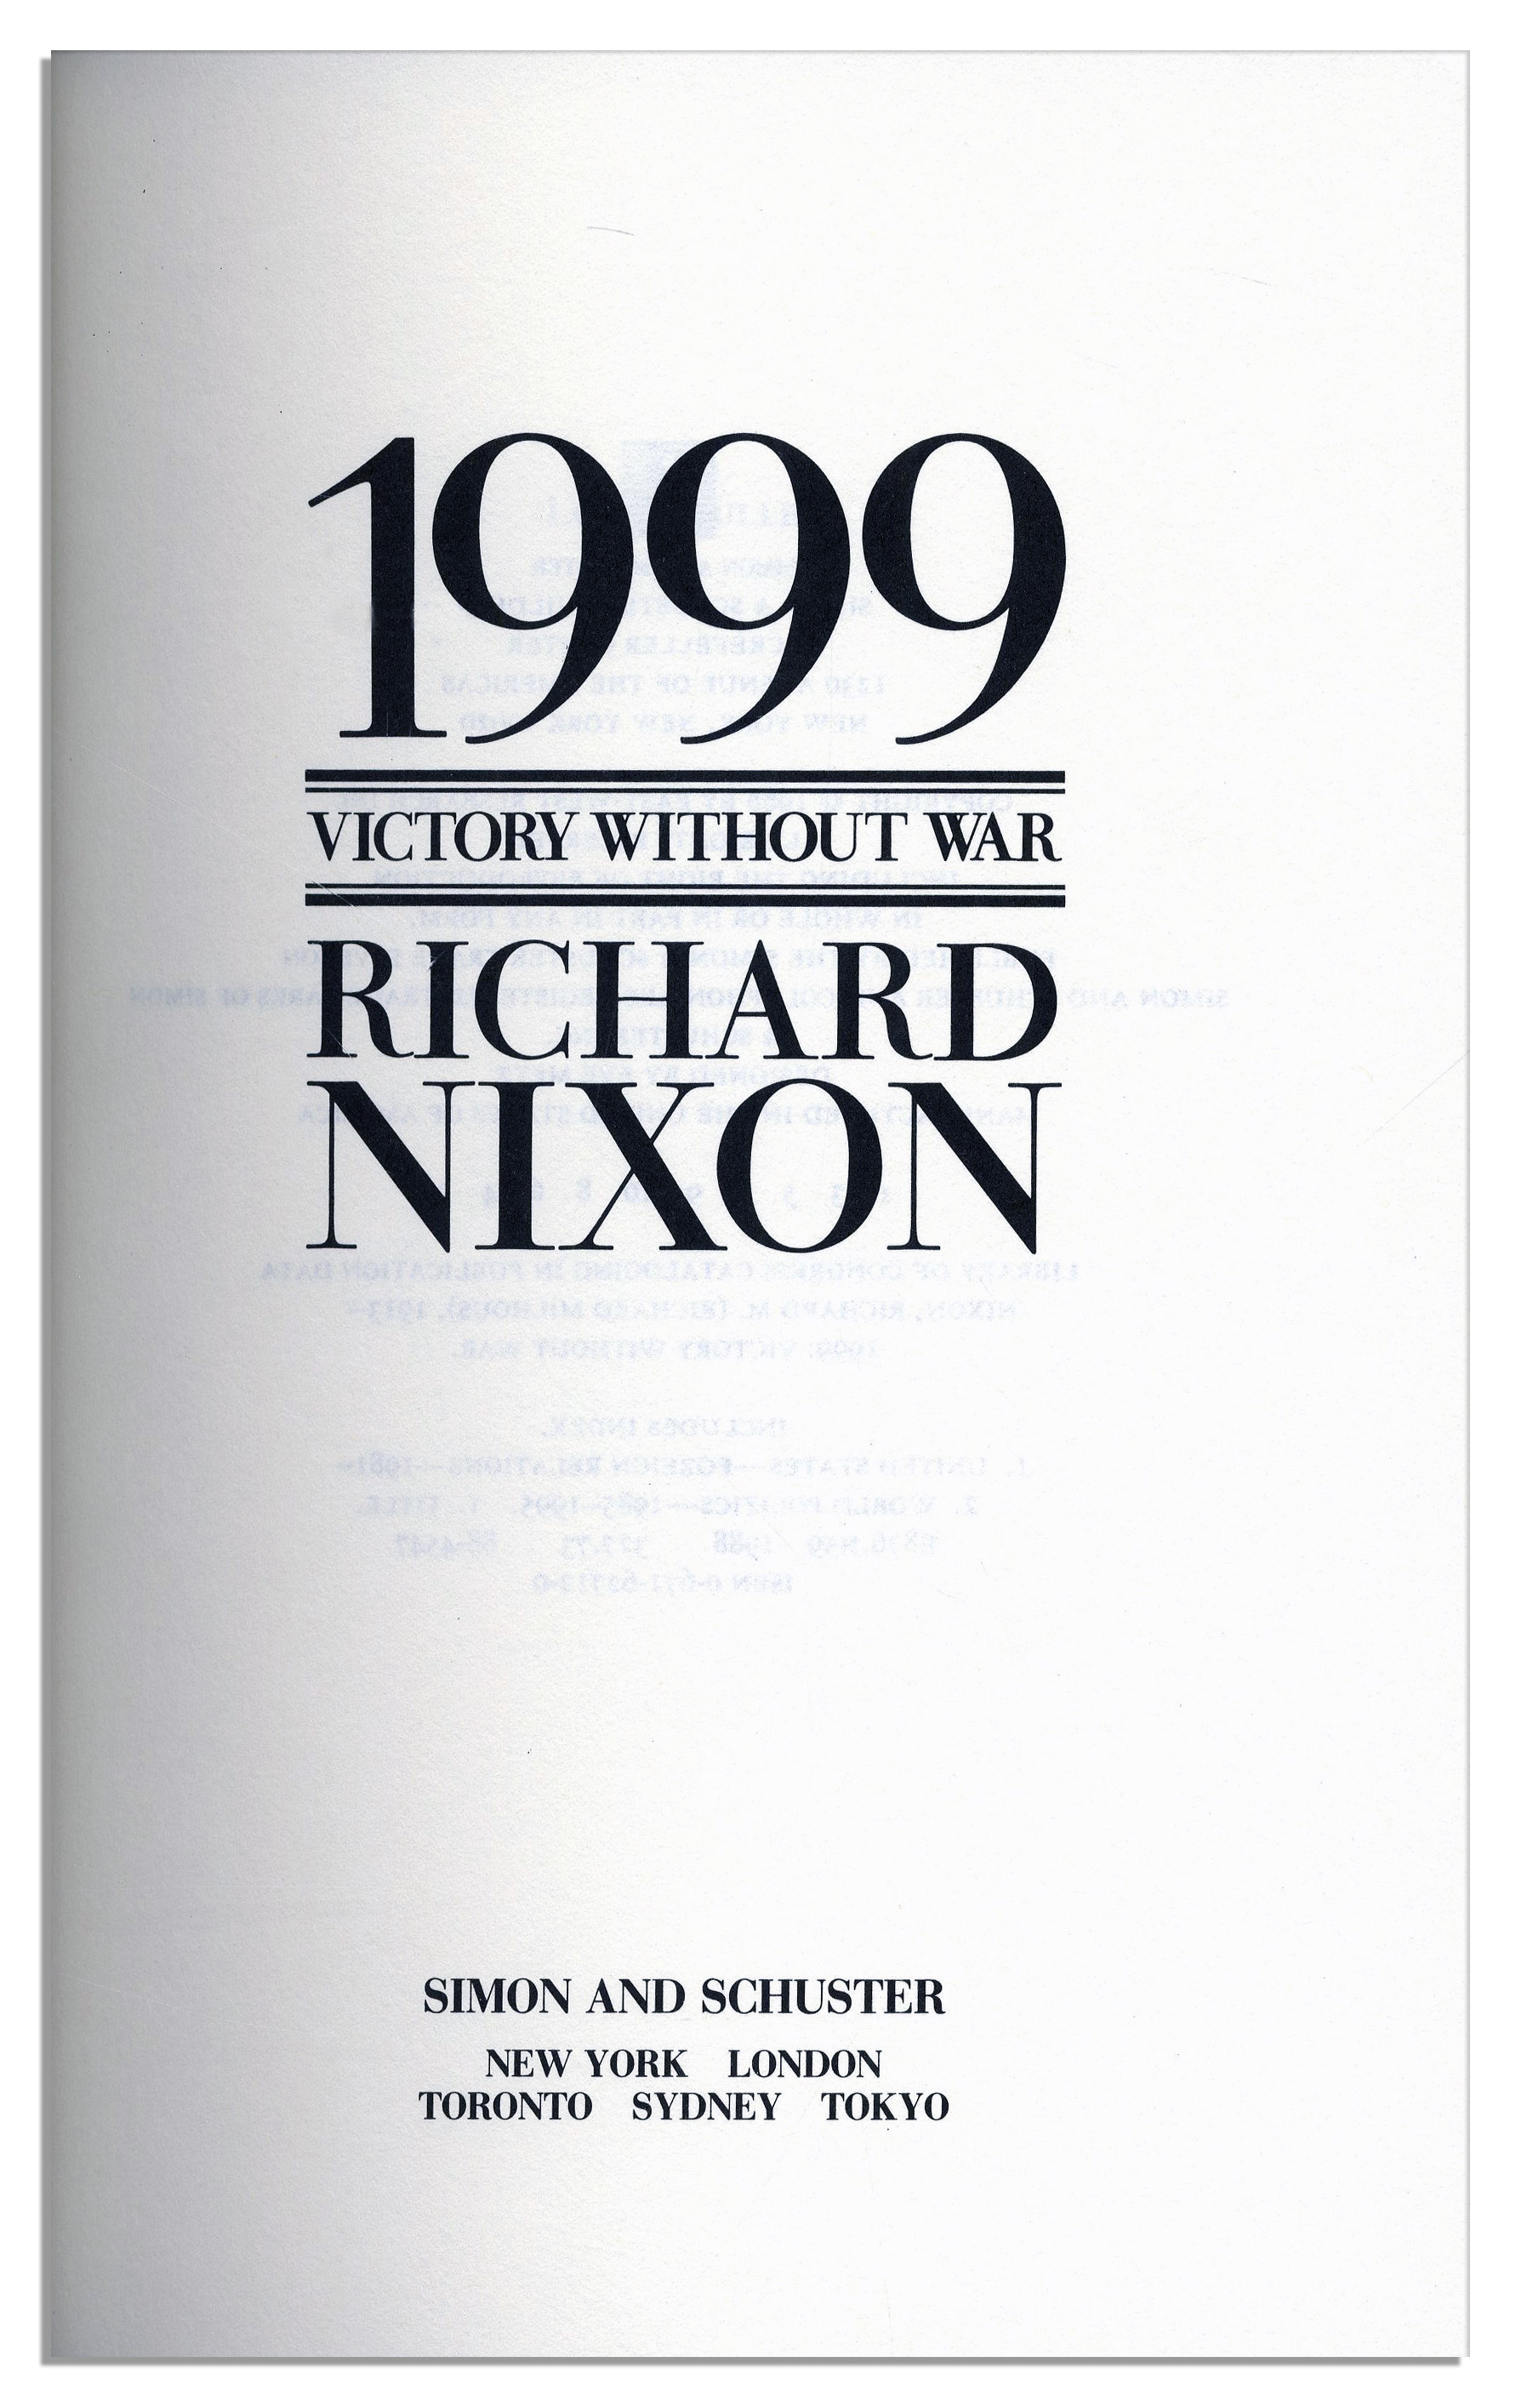 richard nixon research paper Abstract this article examines president richard nixon's gift of a portion of  his prepresidential  ing overseeing a similar gift of nixon's papers for tax year  19699  carlin has been an ally of the archival and research communities, but.